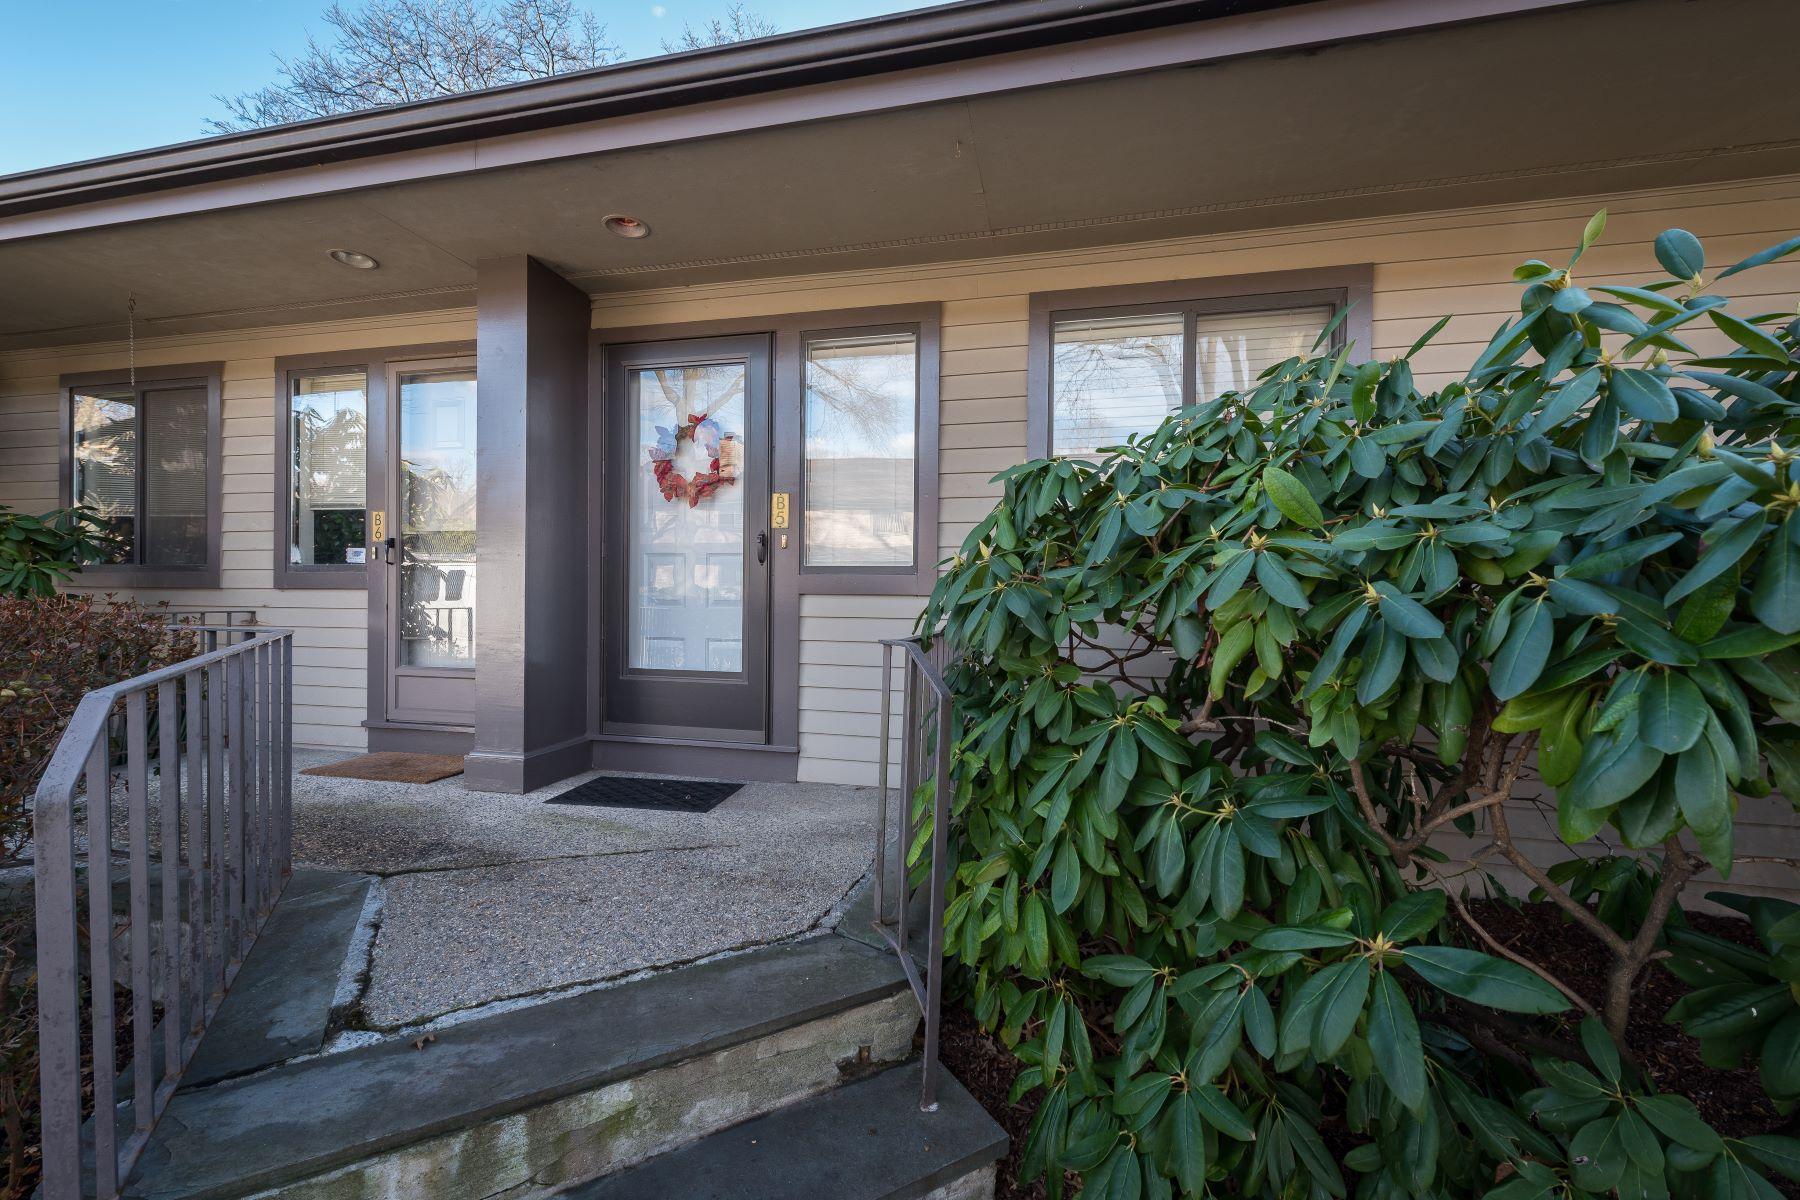 Condominium for Rent at Chesterfield 2289 Bedford Street B5, Stamford, Connecticut, 06905 United States